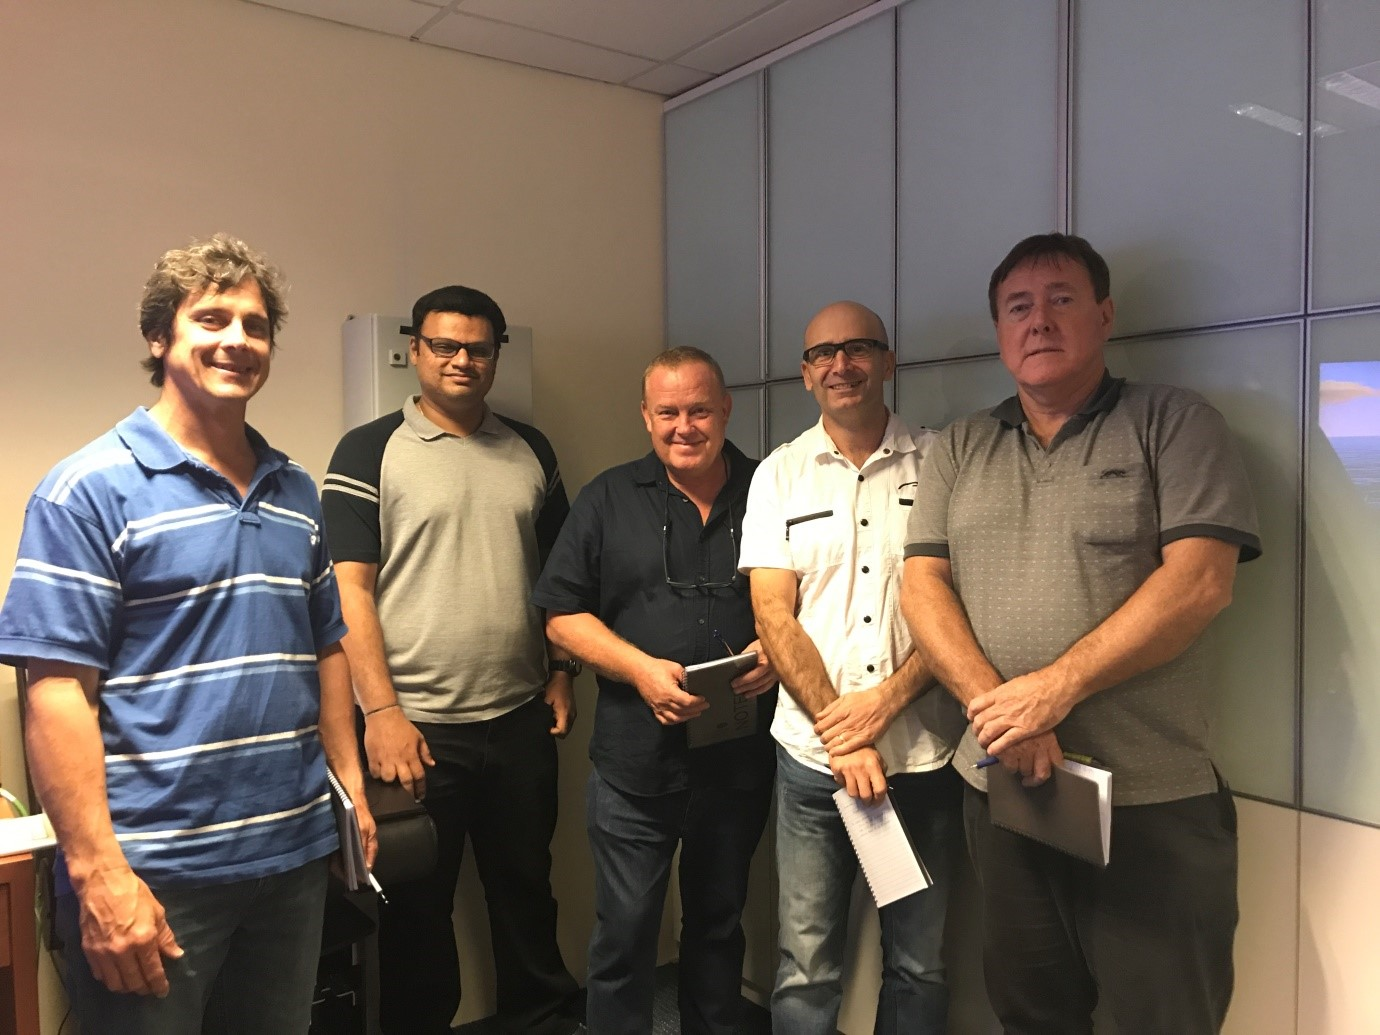 Picture above: DP Maintenance Course attendants, from left to right: Craig Edward Thomas, Baala Sadasivam (Instructor, Sinor Marine), James Duncan O'Flaherty, Glenn Nathan Gibson and Christopher Lloyd May.